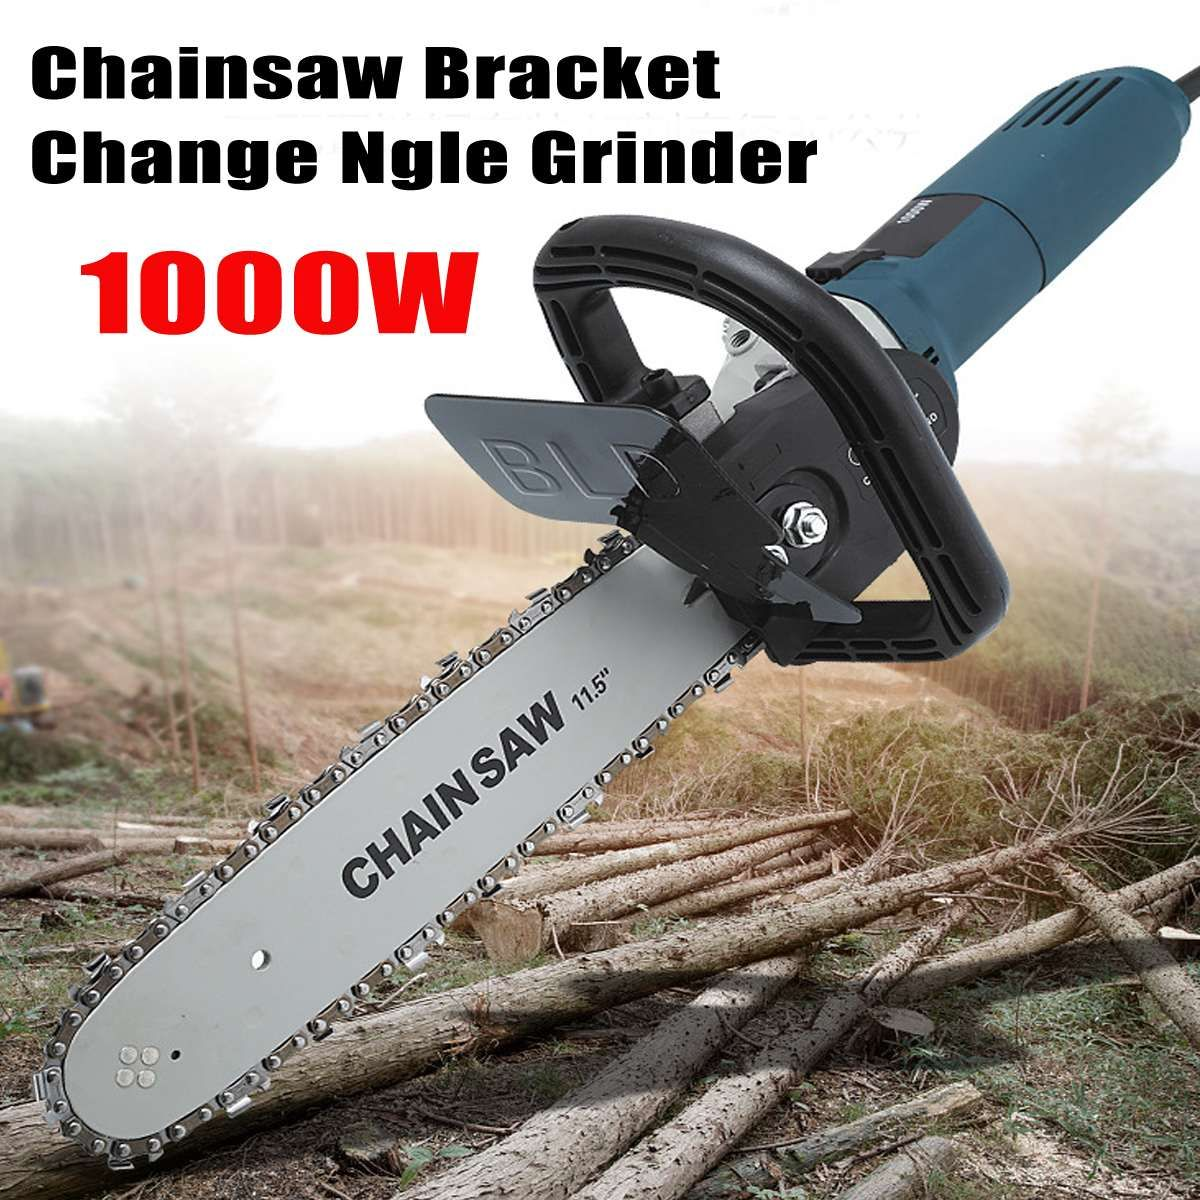 1000W 11000rpm 6 Speed Adjustable Electric 100 Angle Grinder + M10 Chainsaw Woodworking Cutting Chainsaw Bracket Change Grinder